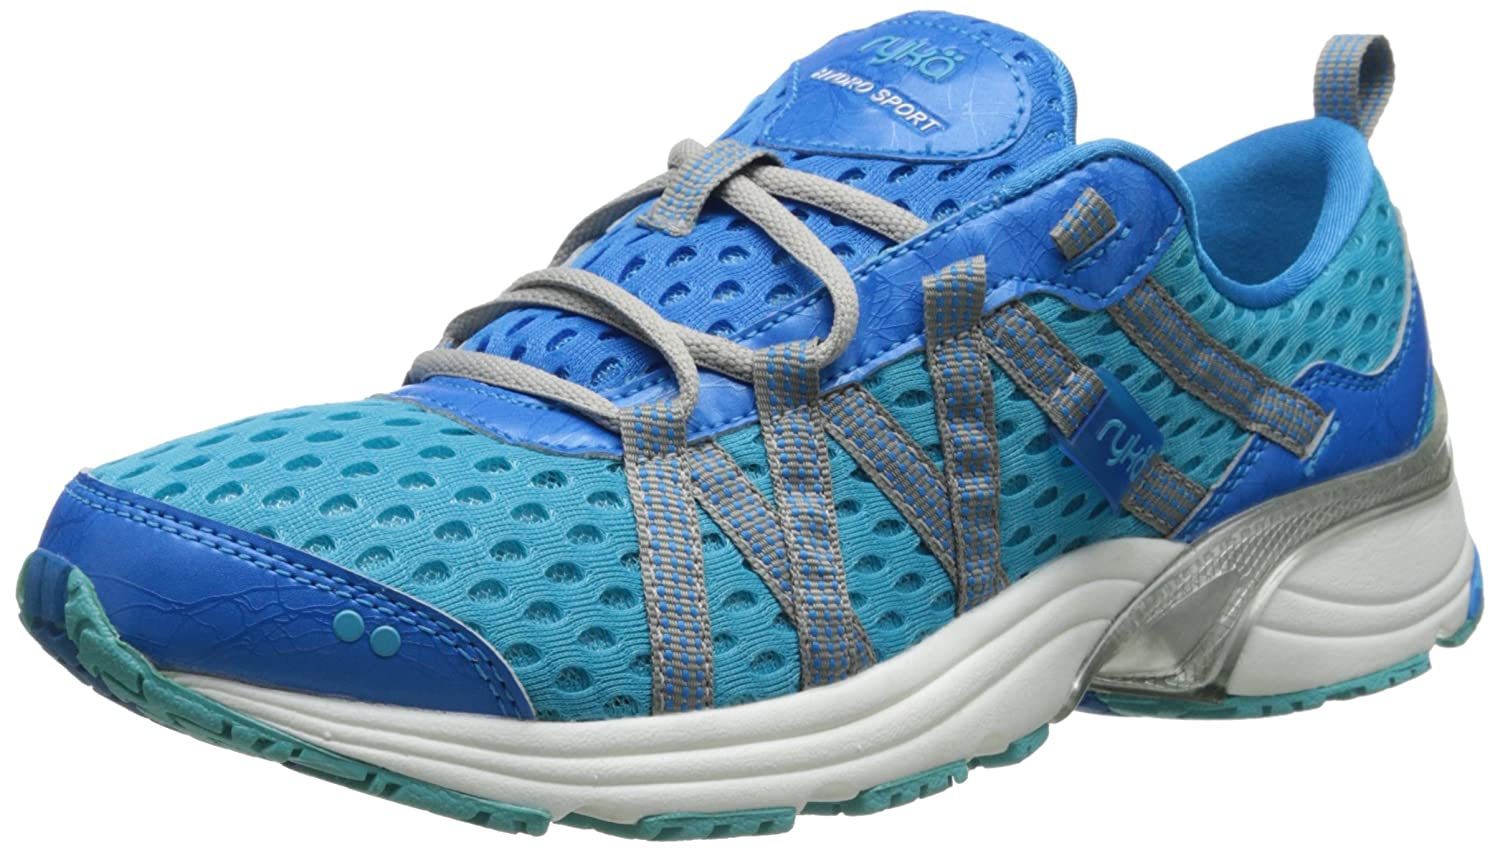 Ryka Women's Hydro Sport Water Shoe Cross-Training Shoe B00ISMG4BQ 6 B(M) US|Detox Blue/Twinkle Blue/Chrome Silver